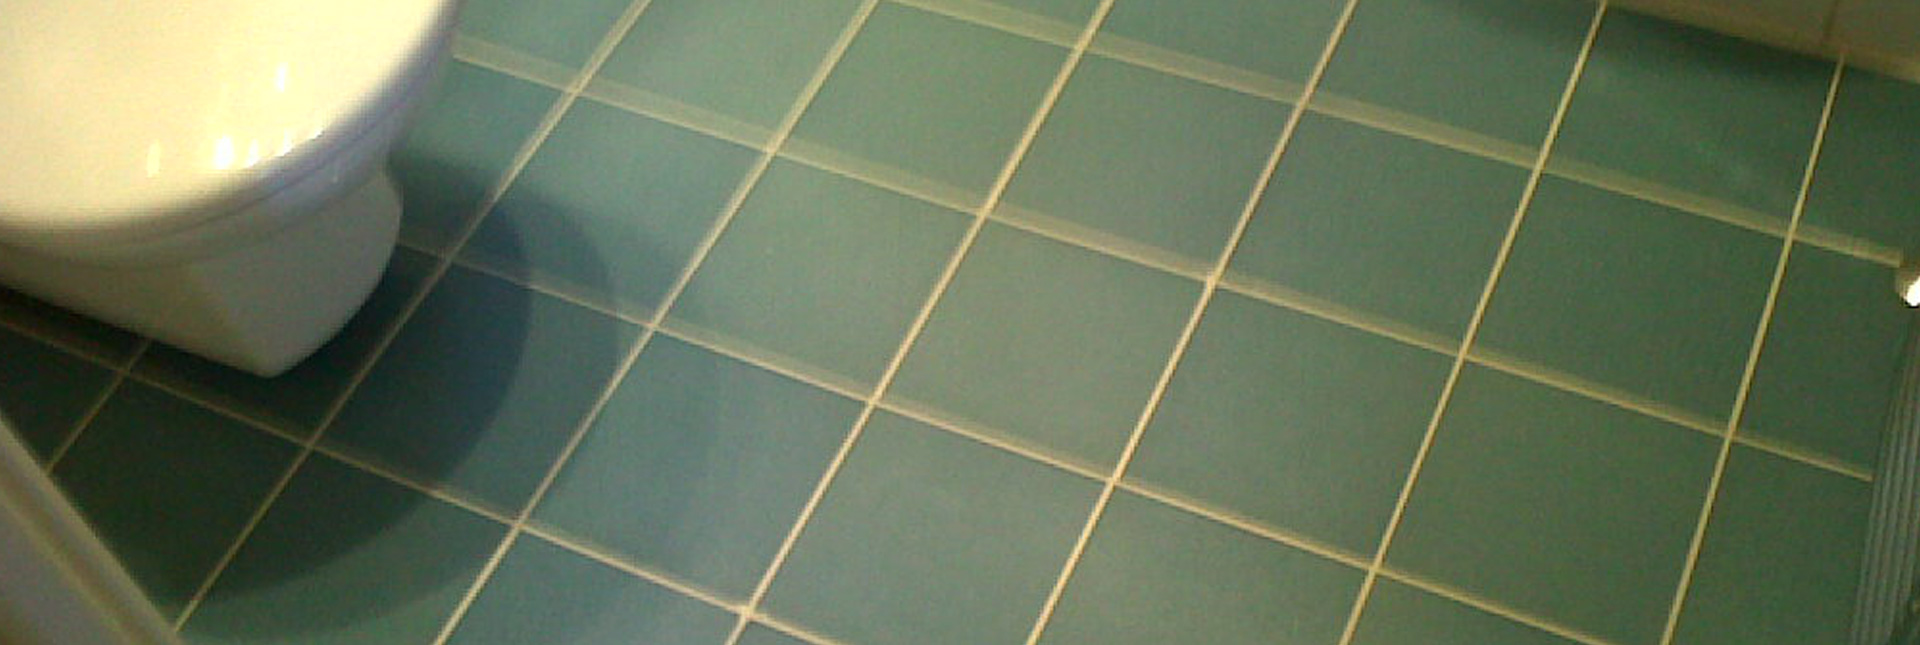 residential-tile-grout-3